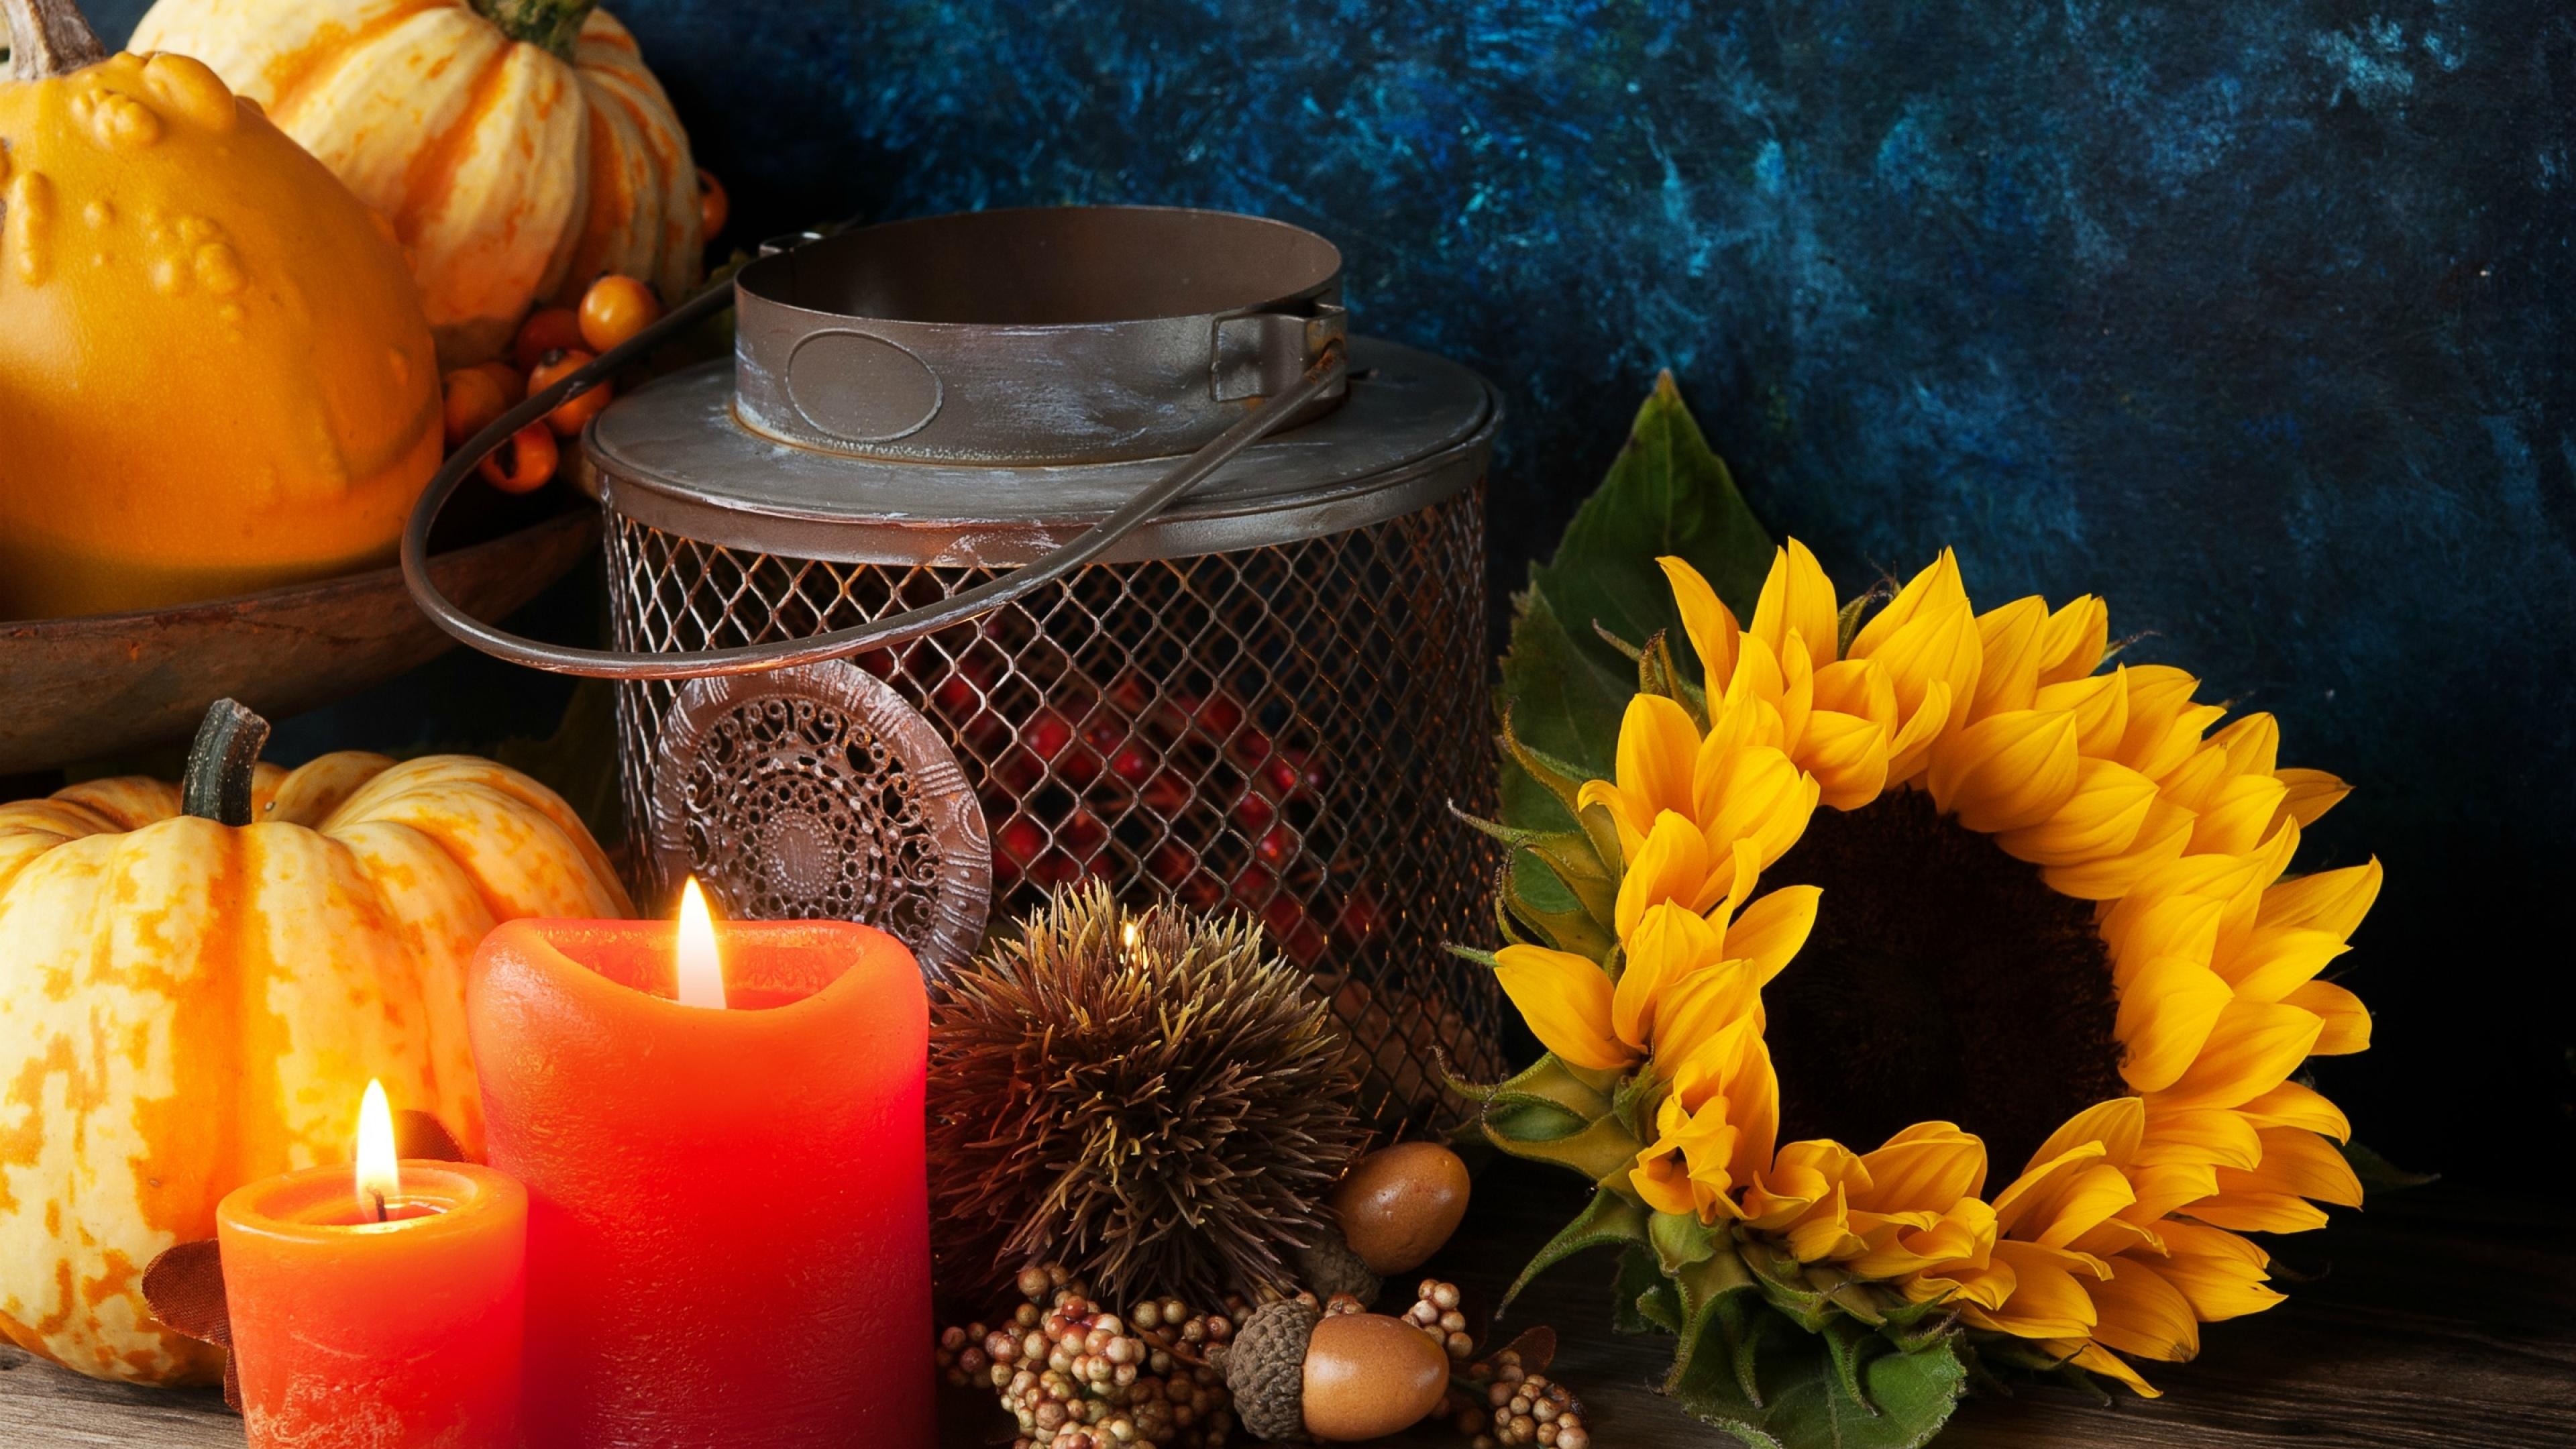 Light Up Fall - Flowers & Nature Background Wallpapers on ... |Fall Candles Background